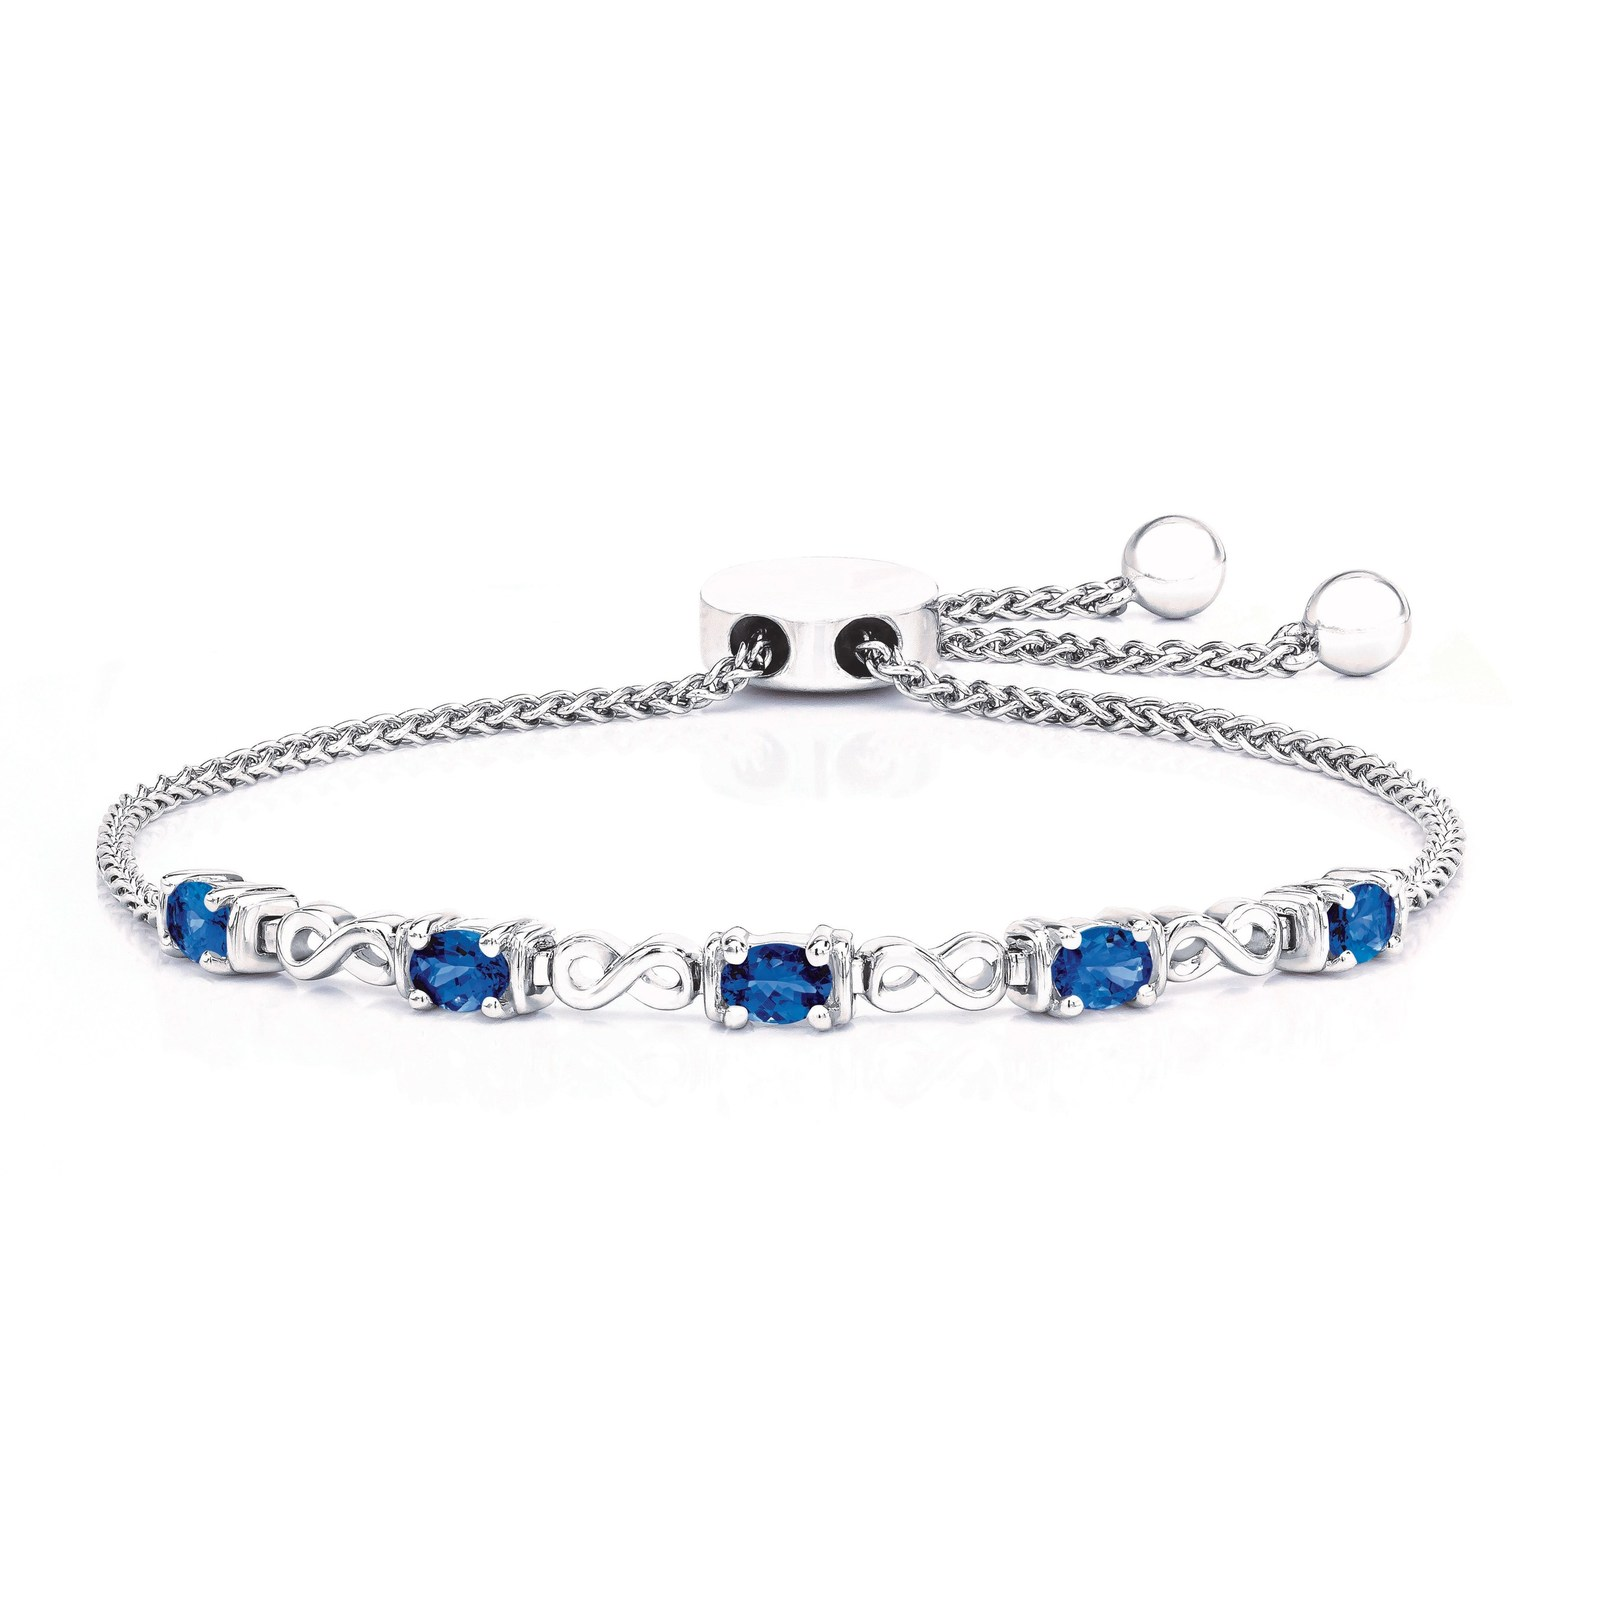 One Diamond Bracelet